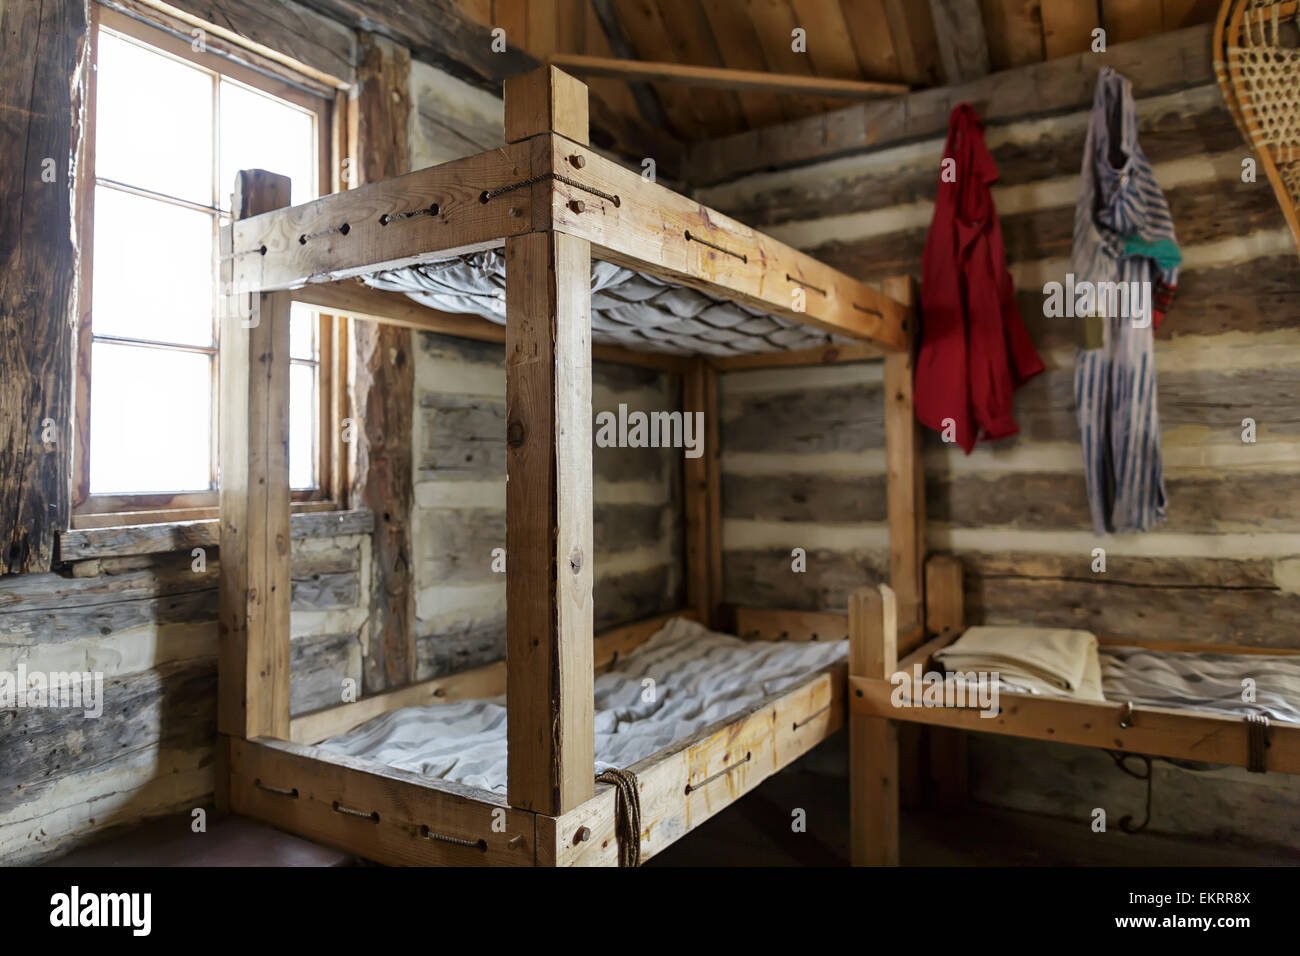 Rustic Bunk Beds And Living Quarters Of A Fur Trade Era